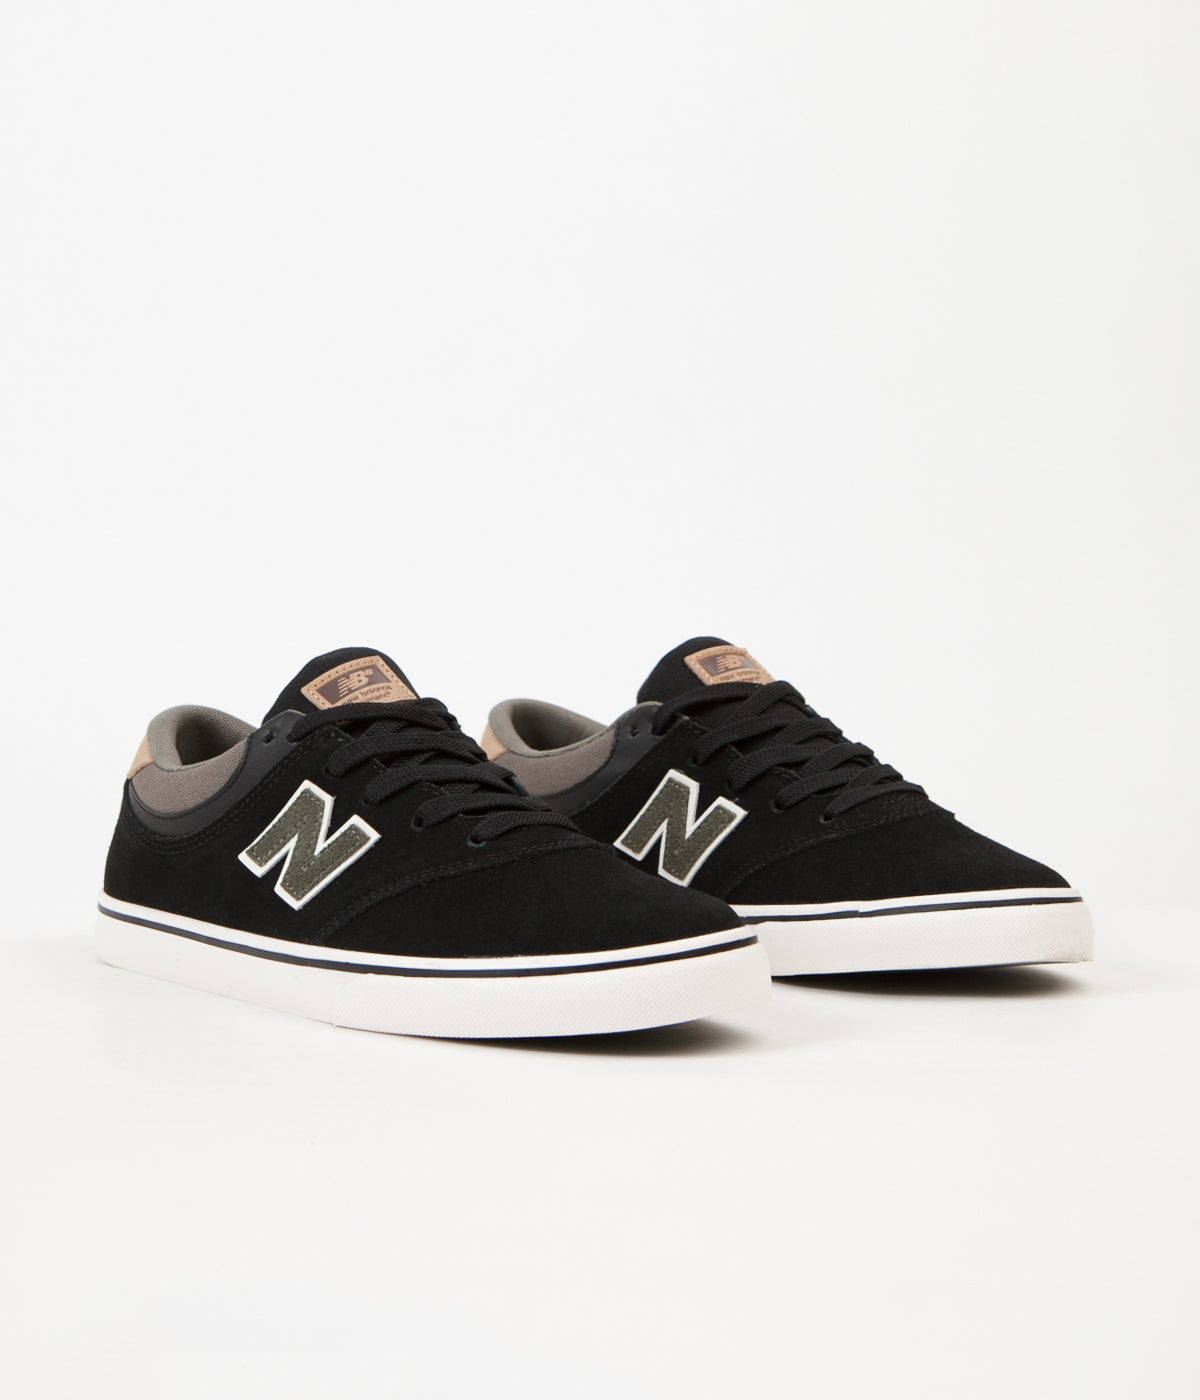 New Balance Numeric Quincy 254 Shoes - Black / Military Foliage Green